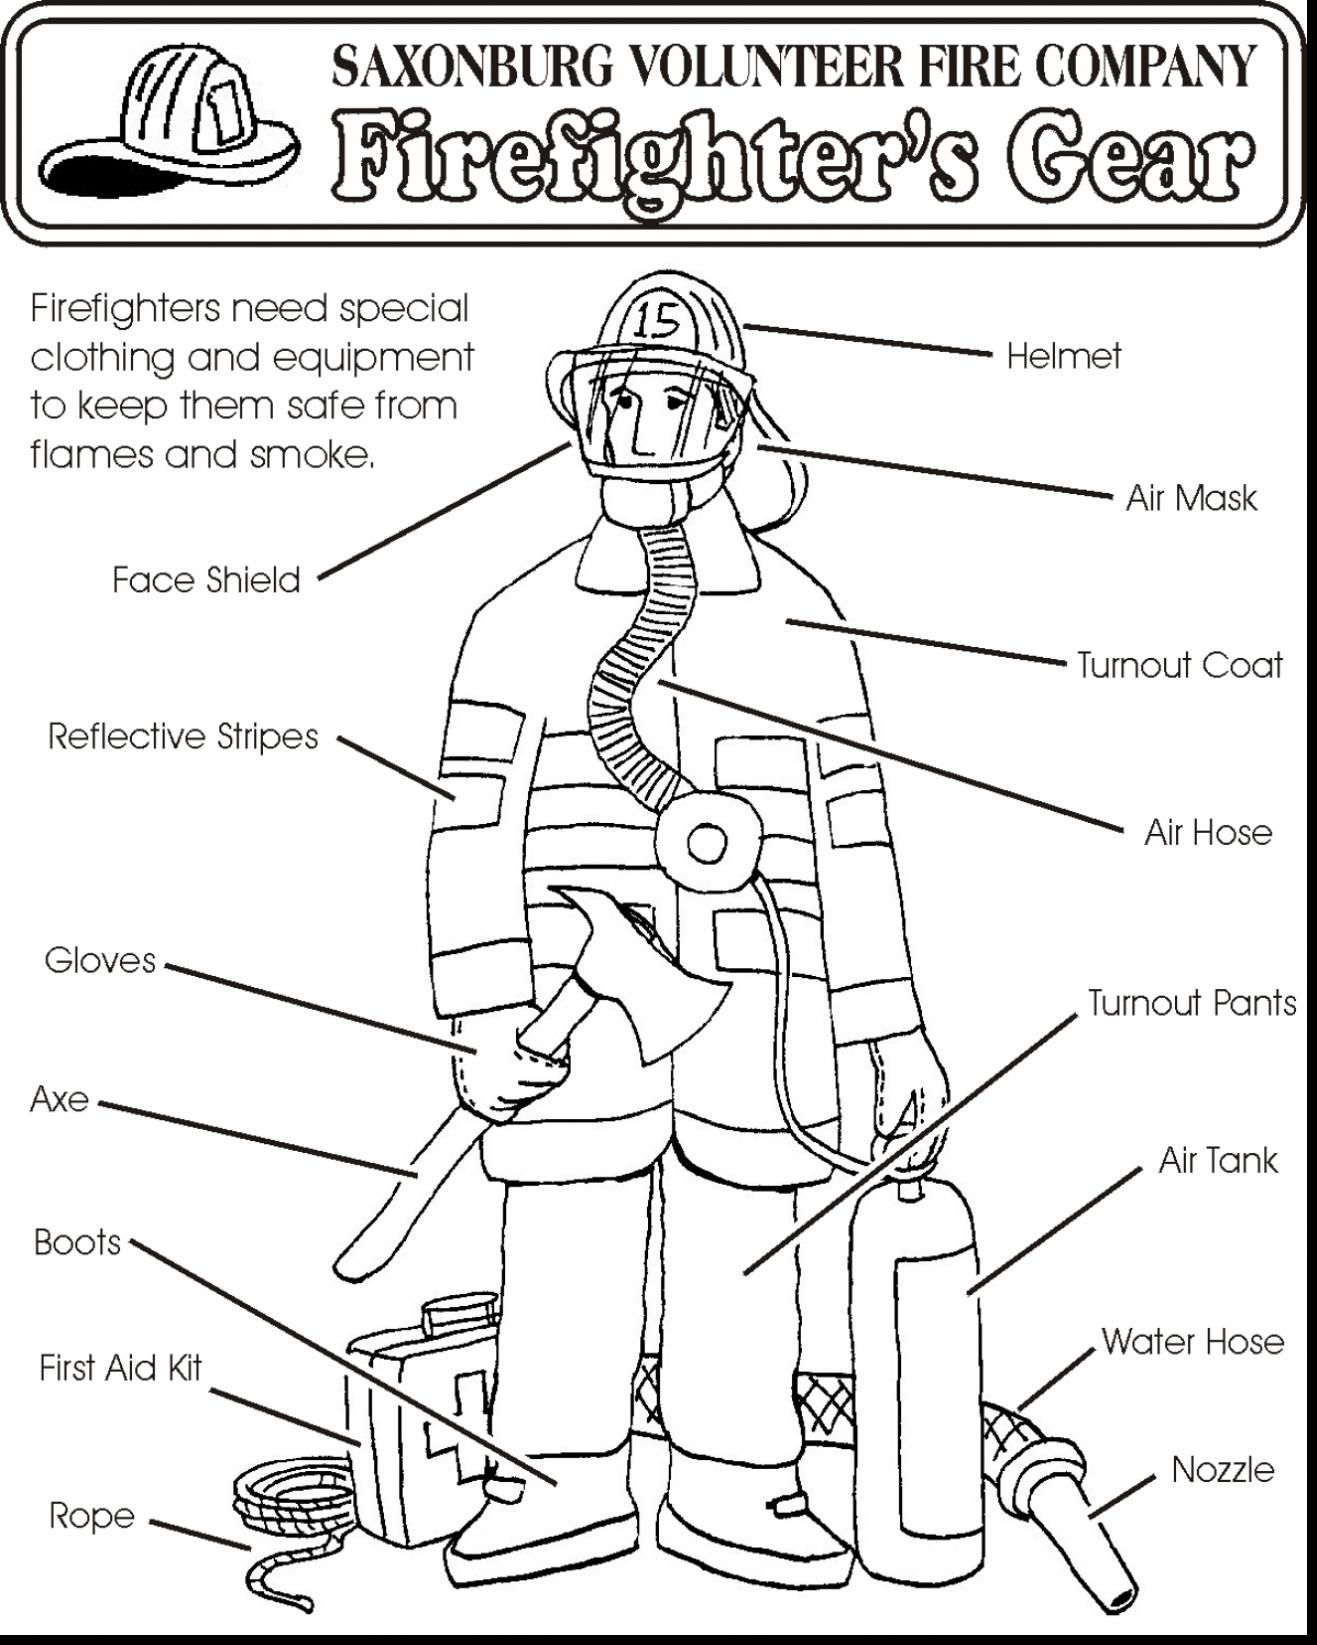 Fire Prevention Coloring Pages At Getcolorings